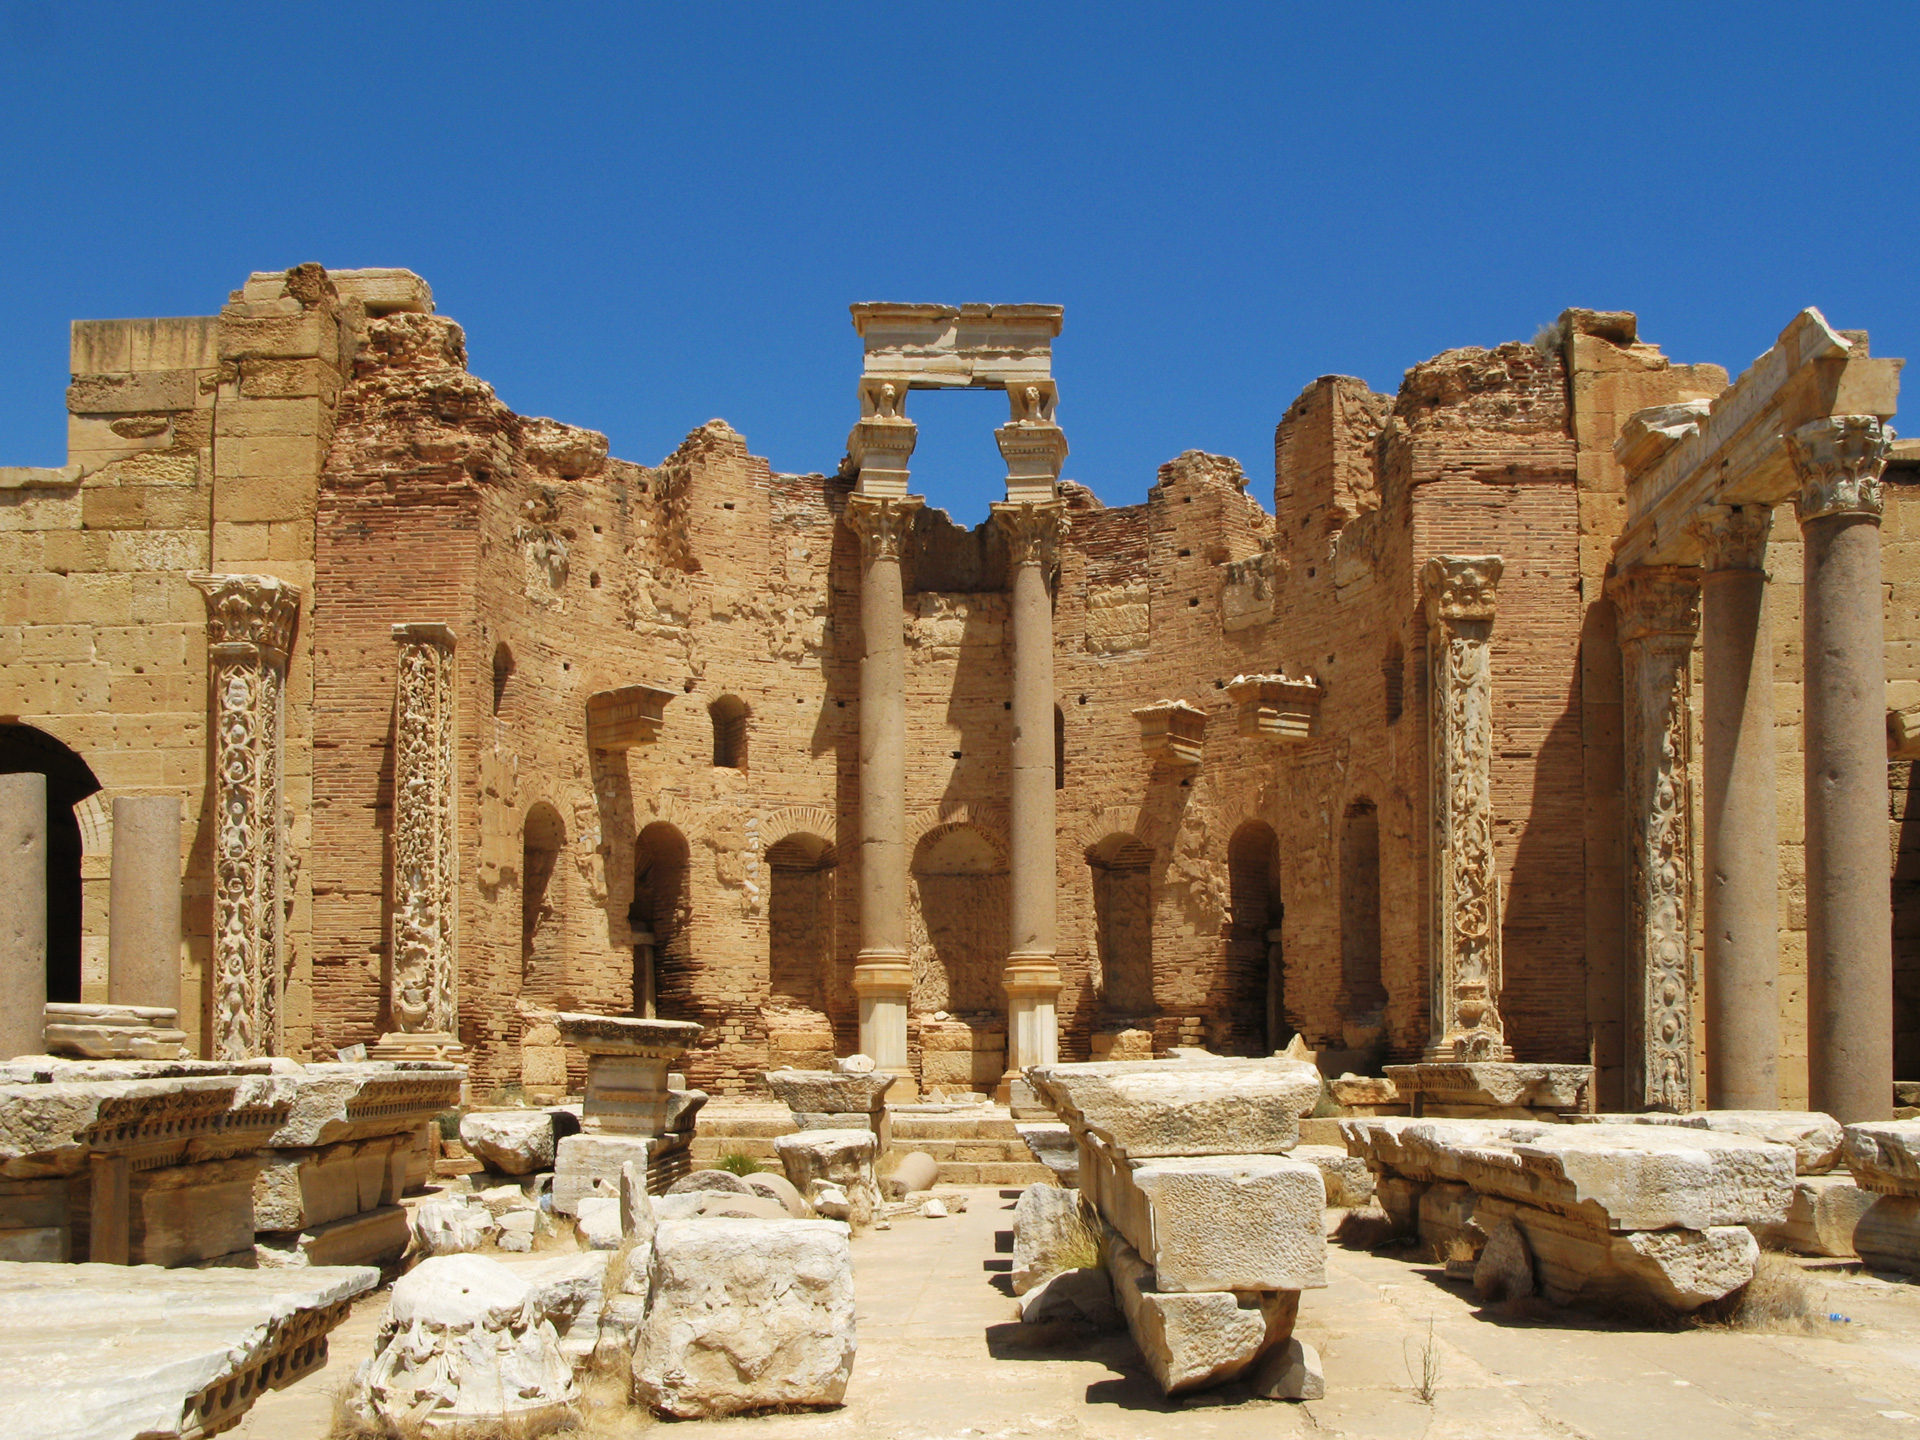 Photos of the ancient Roman City of Leptis Magnor, located about an hour east of Tripoli, Libya on the coast highway.